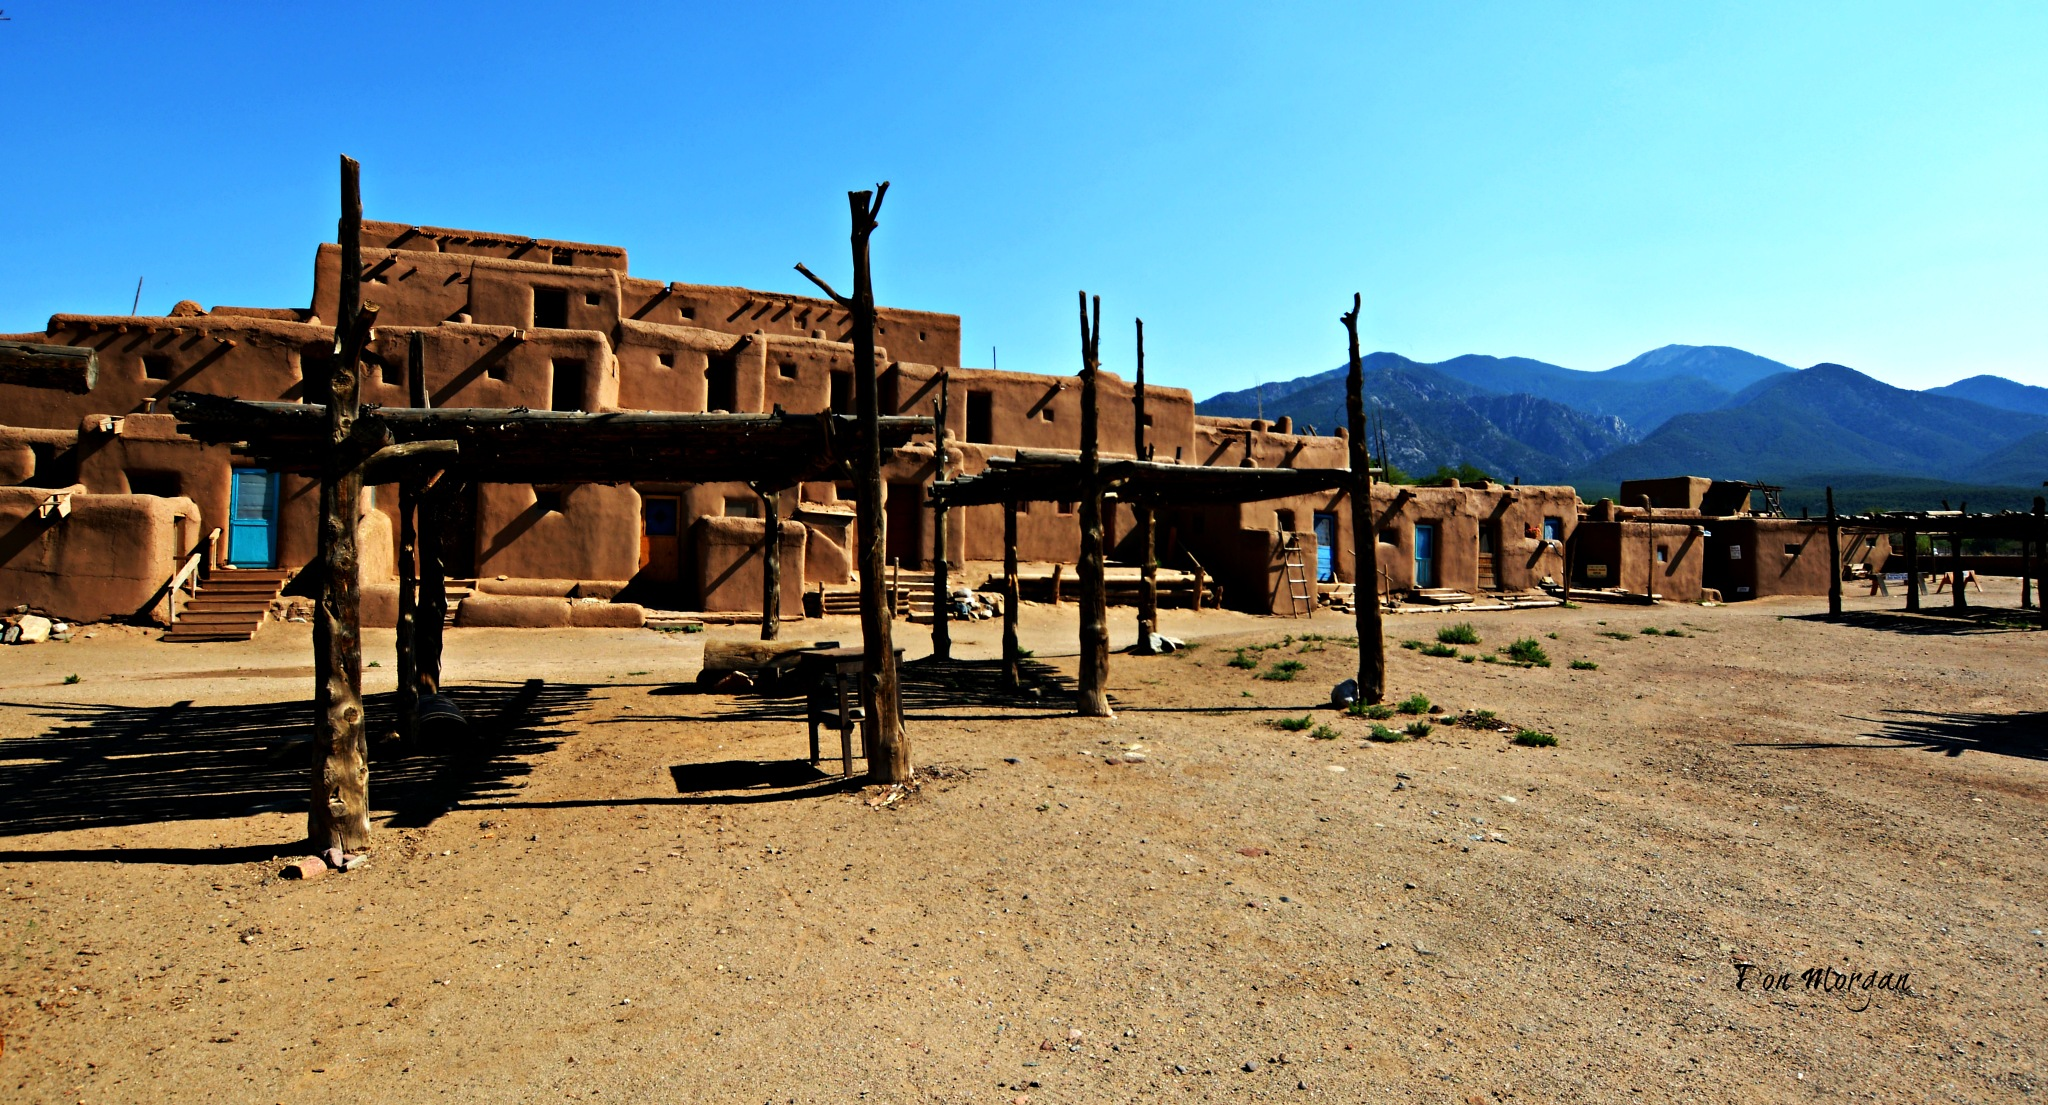 Taos Pueblo, New Mexico, USA by donmorgan66